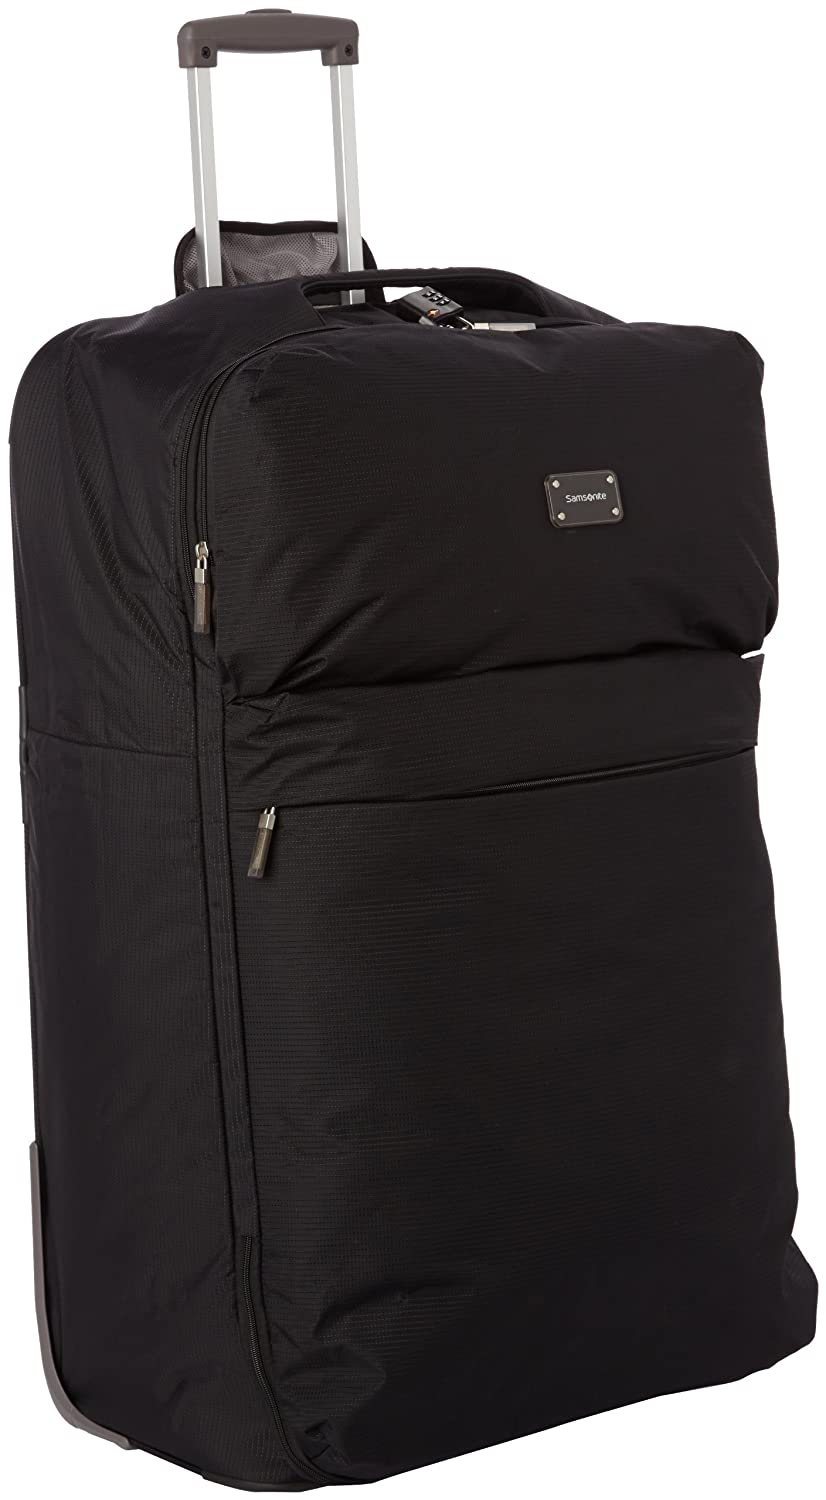 Samsonite Maletas y trolleys 55920-1374 Gris 111 liters: Amazon.es: Equipaje